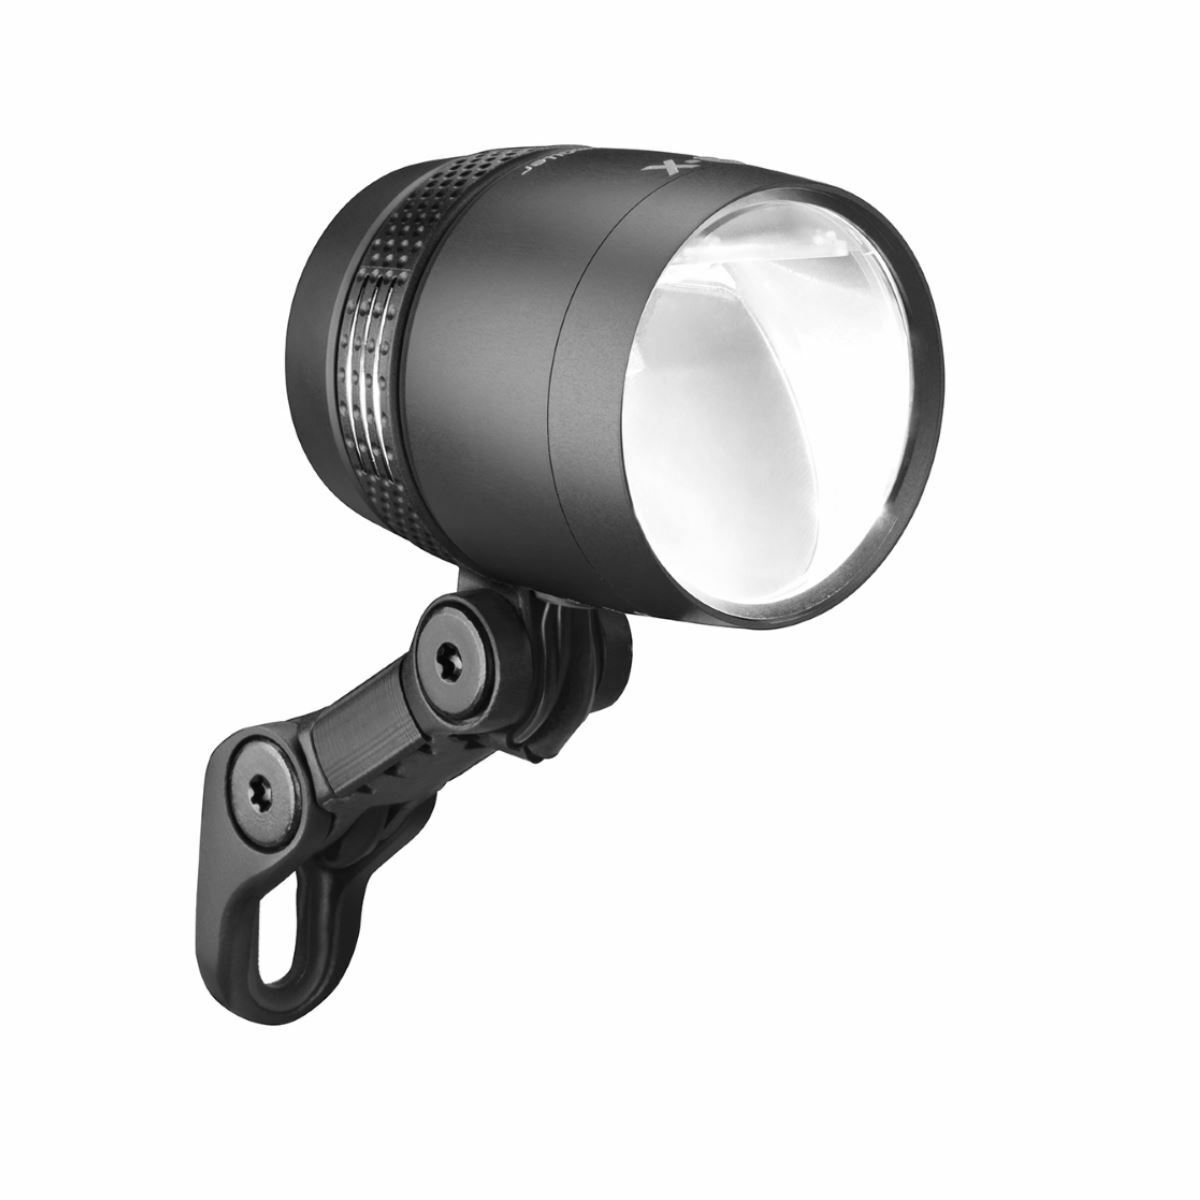 Busch + Müller Iq-X E Front Light 150 Lux for E-Bike Battery up to 6-60V